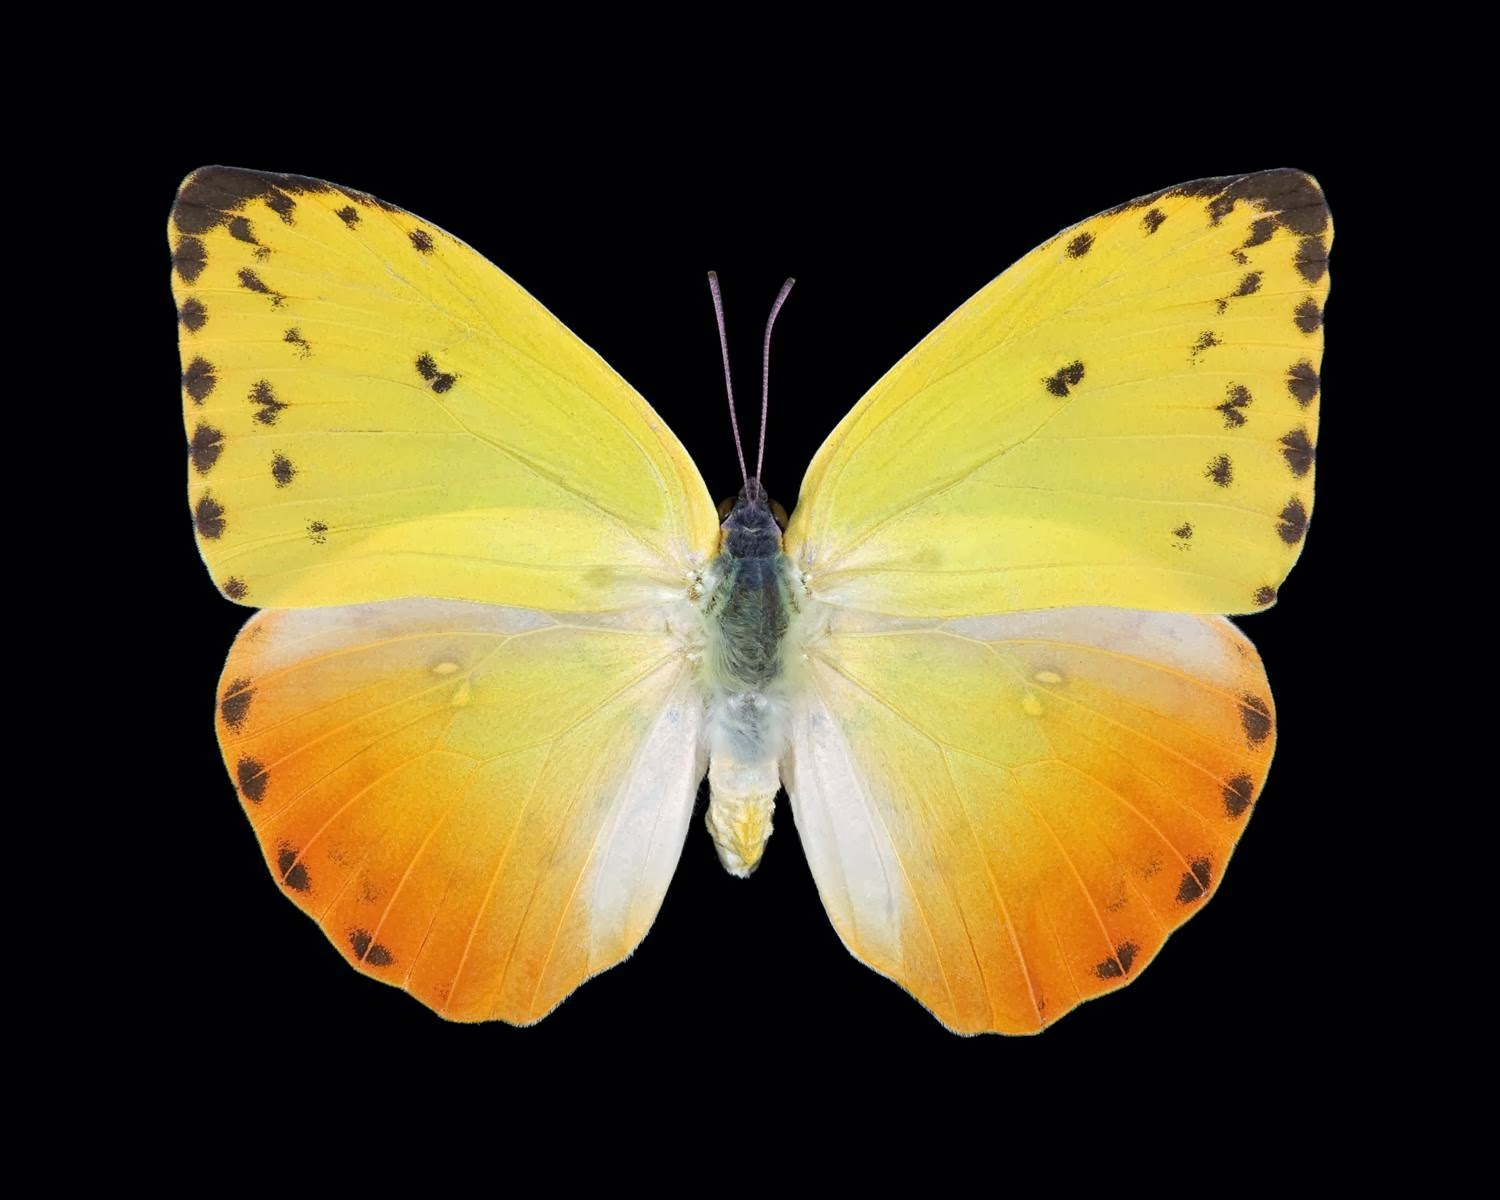 yellow butterfly wallpaper free - photo #19